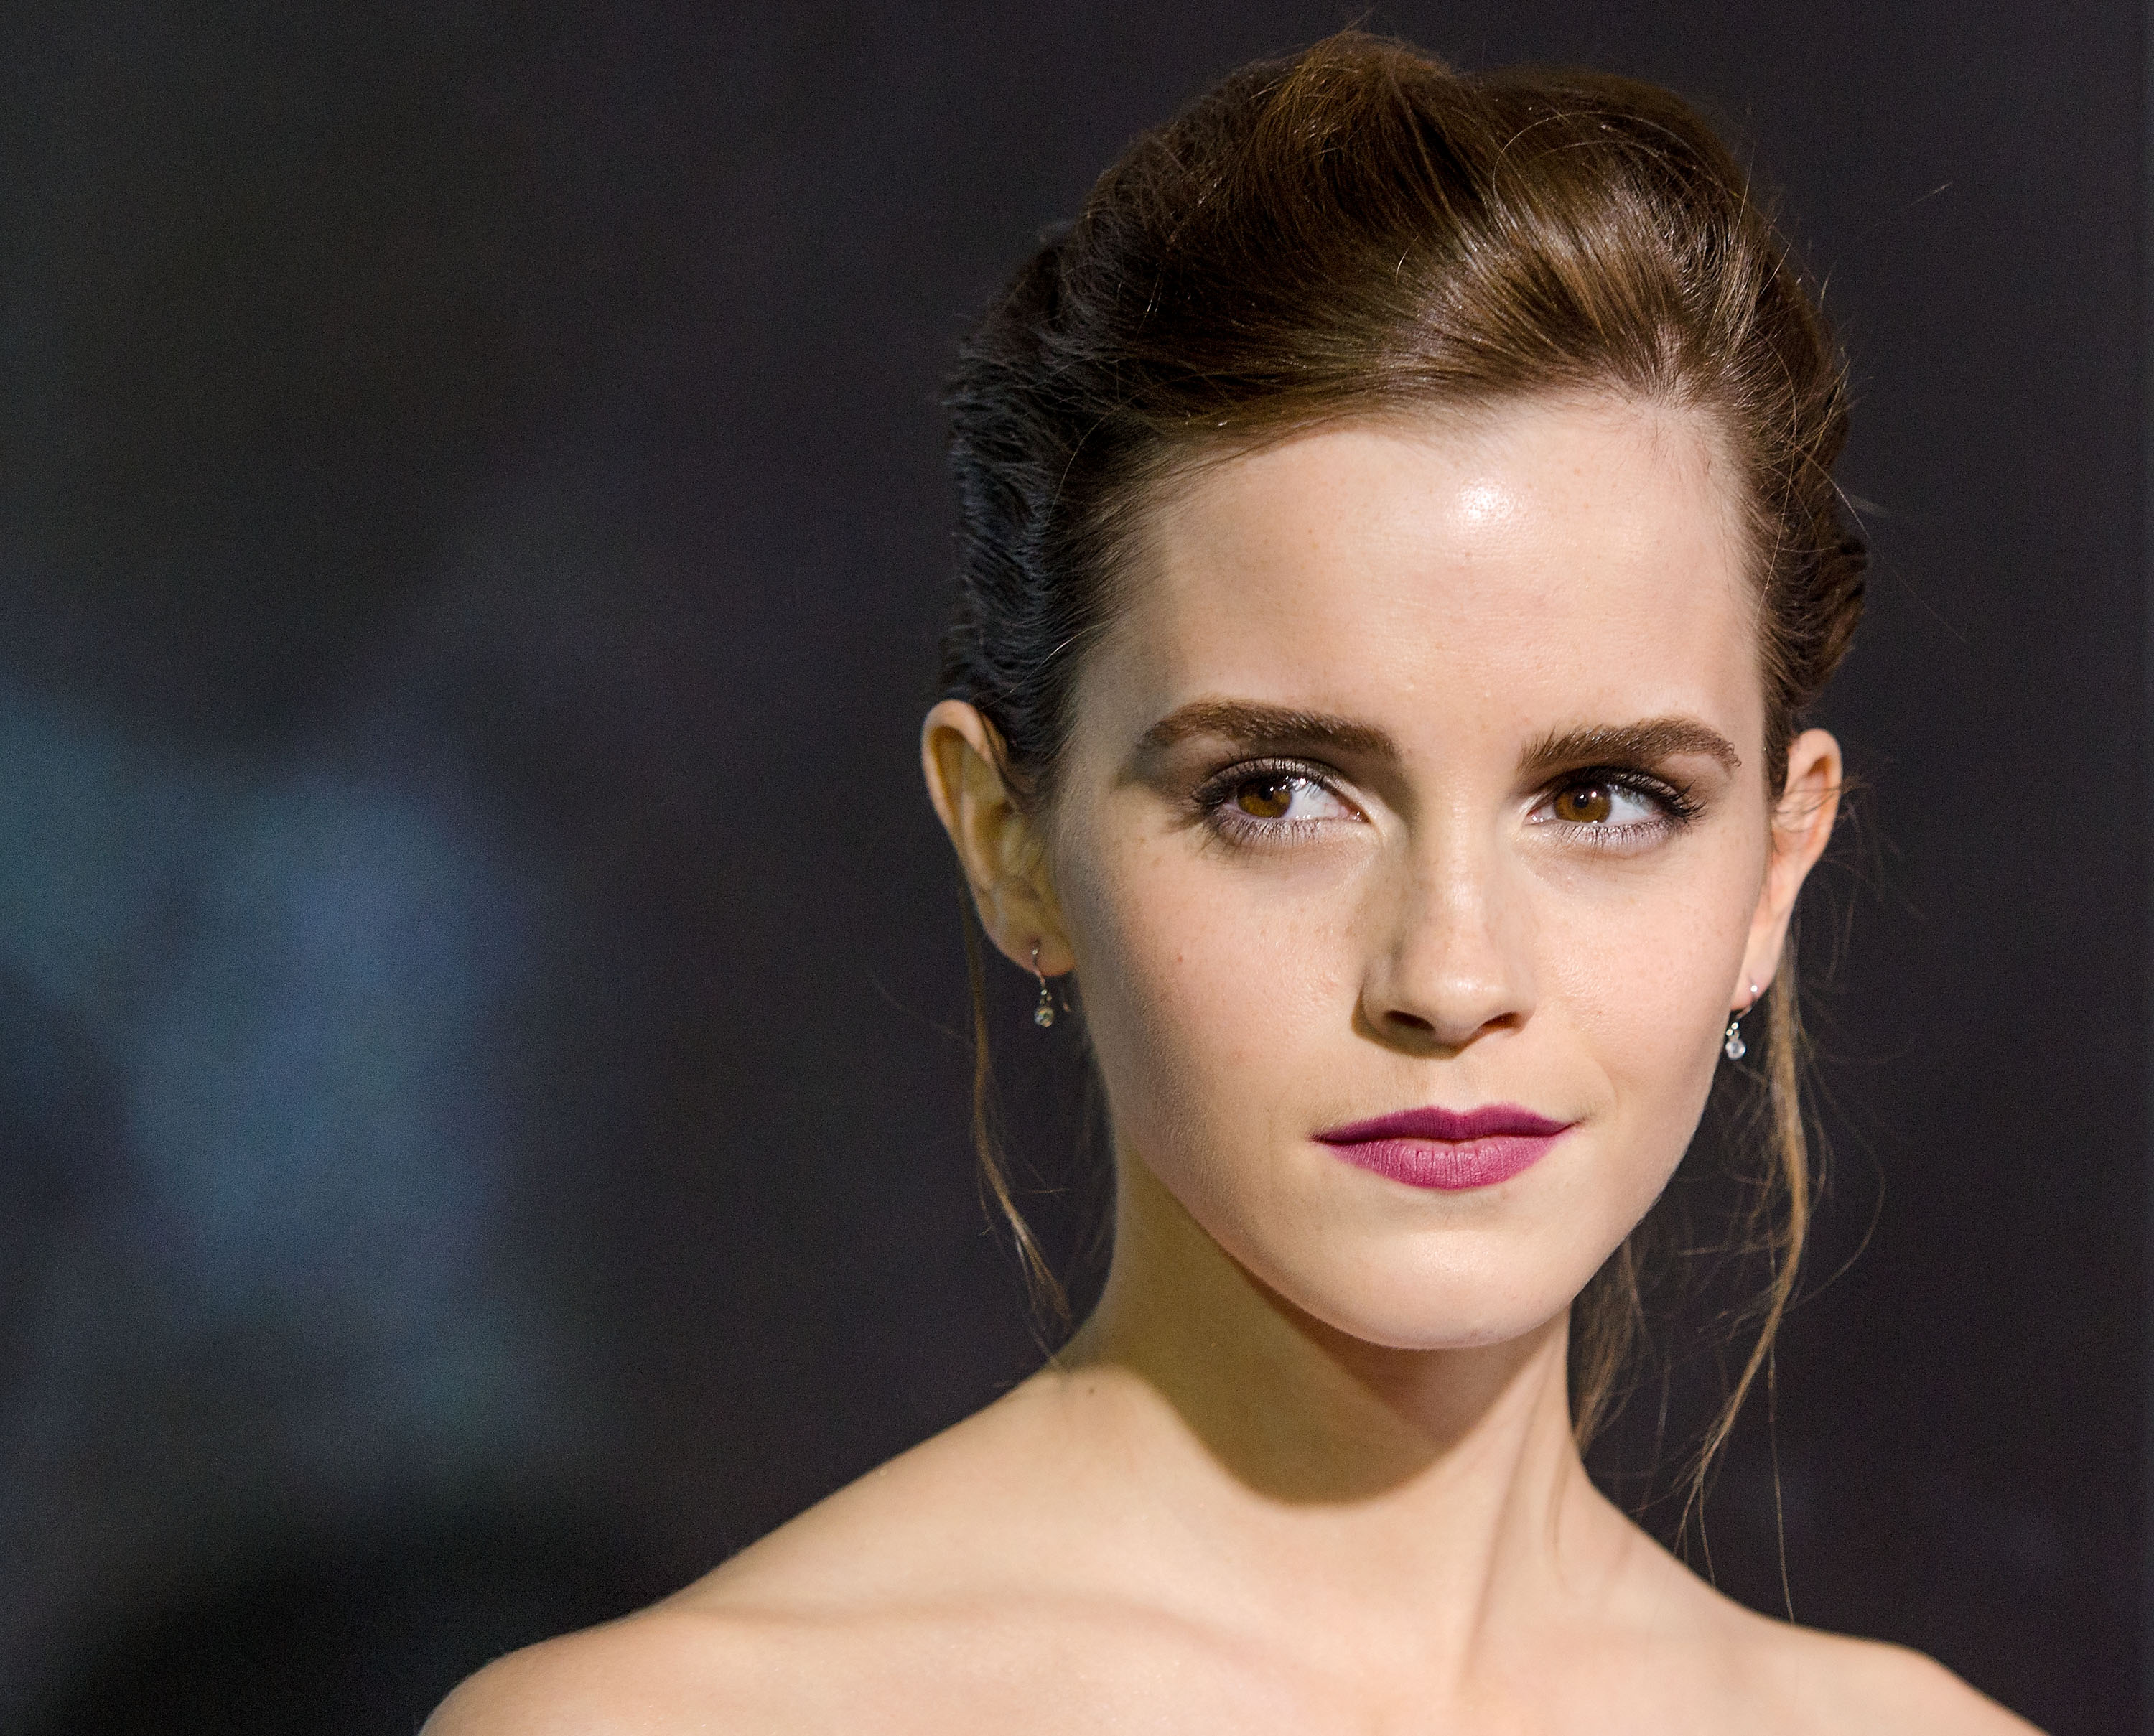 NEW YORK, NY - OCTOBER 01:  Emma Watson attends the 'Gravity' New York premiere at AMC Lincoln Square Theater on October 1, 2